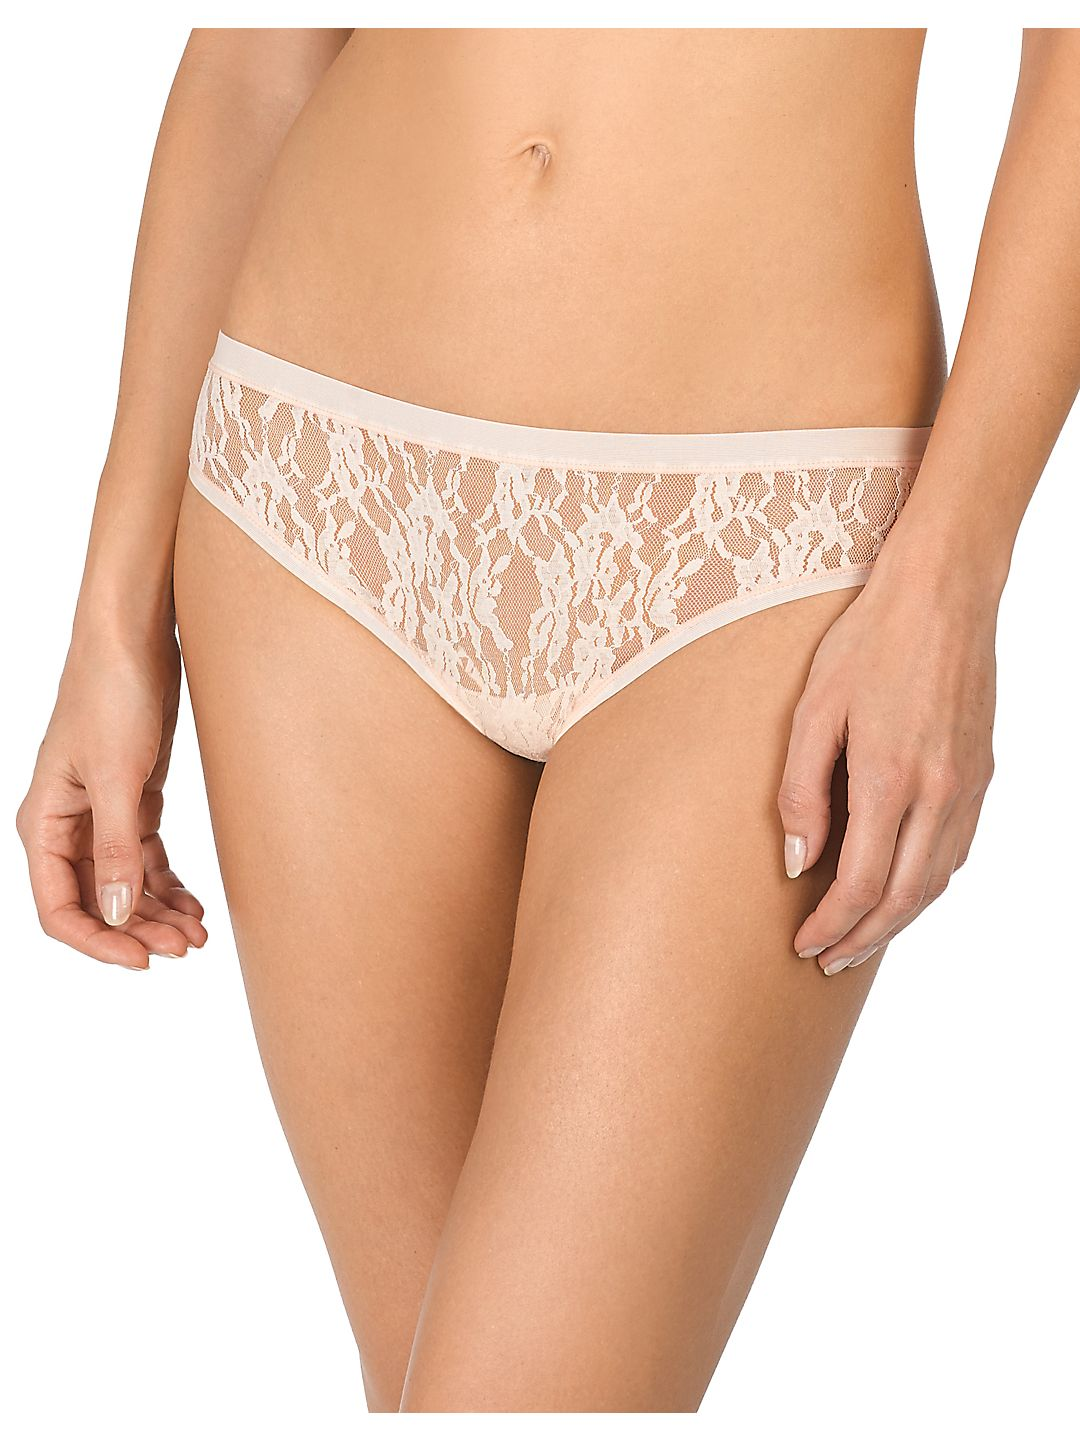 Bliss Desire Lace Thong